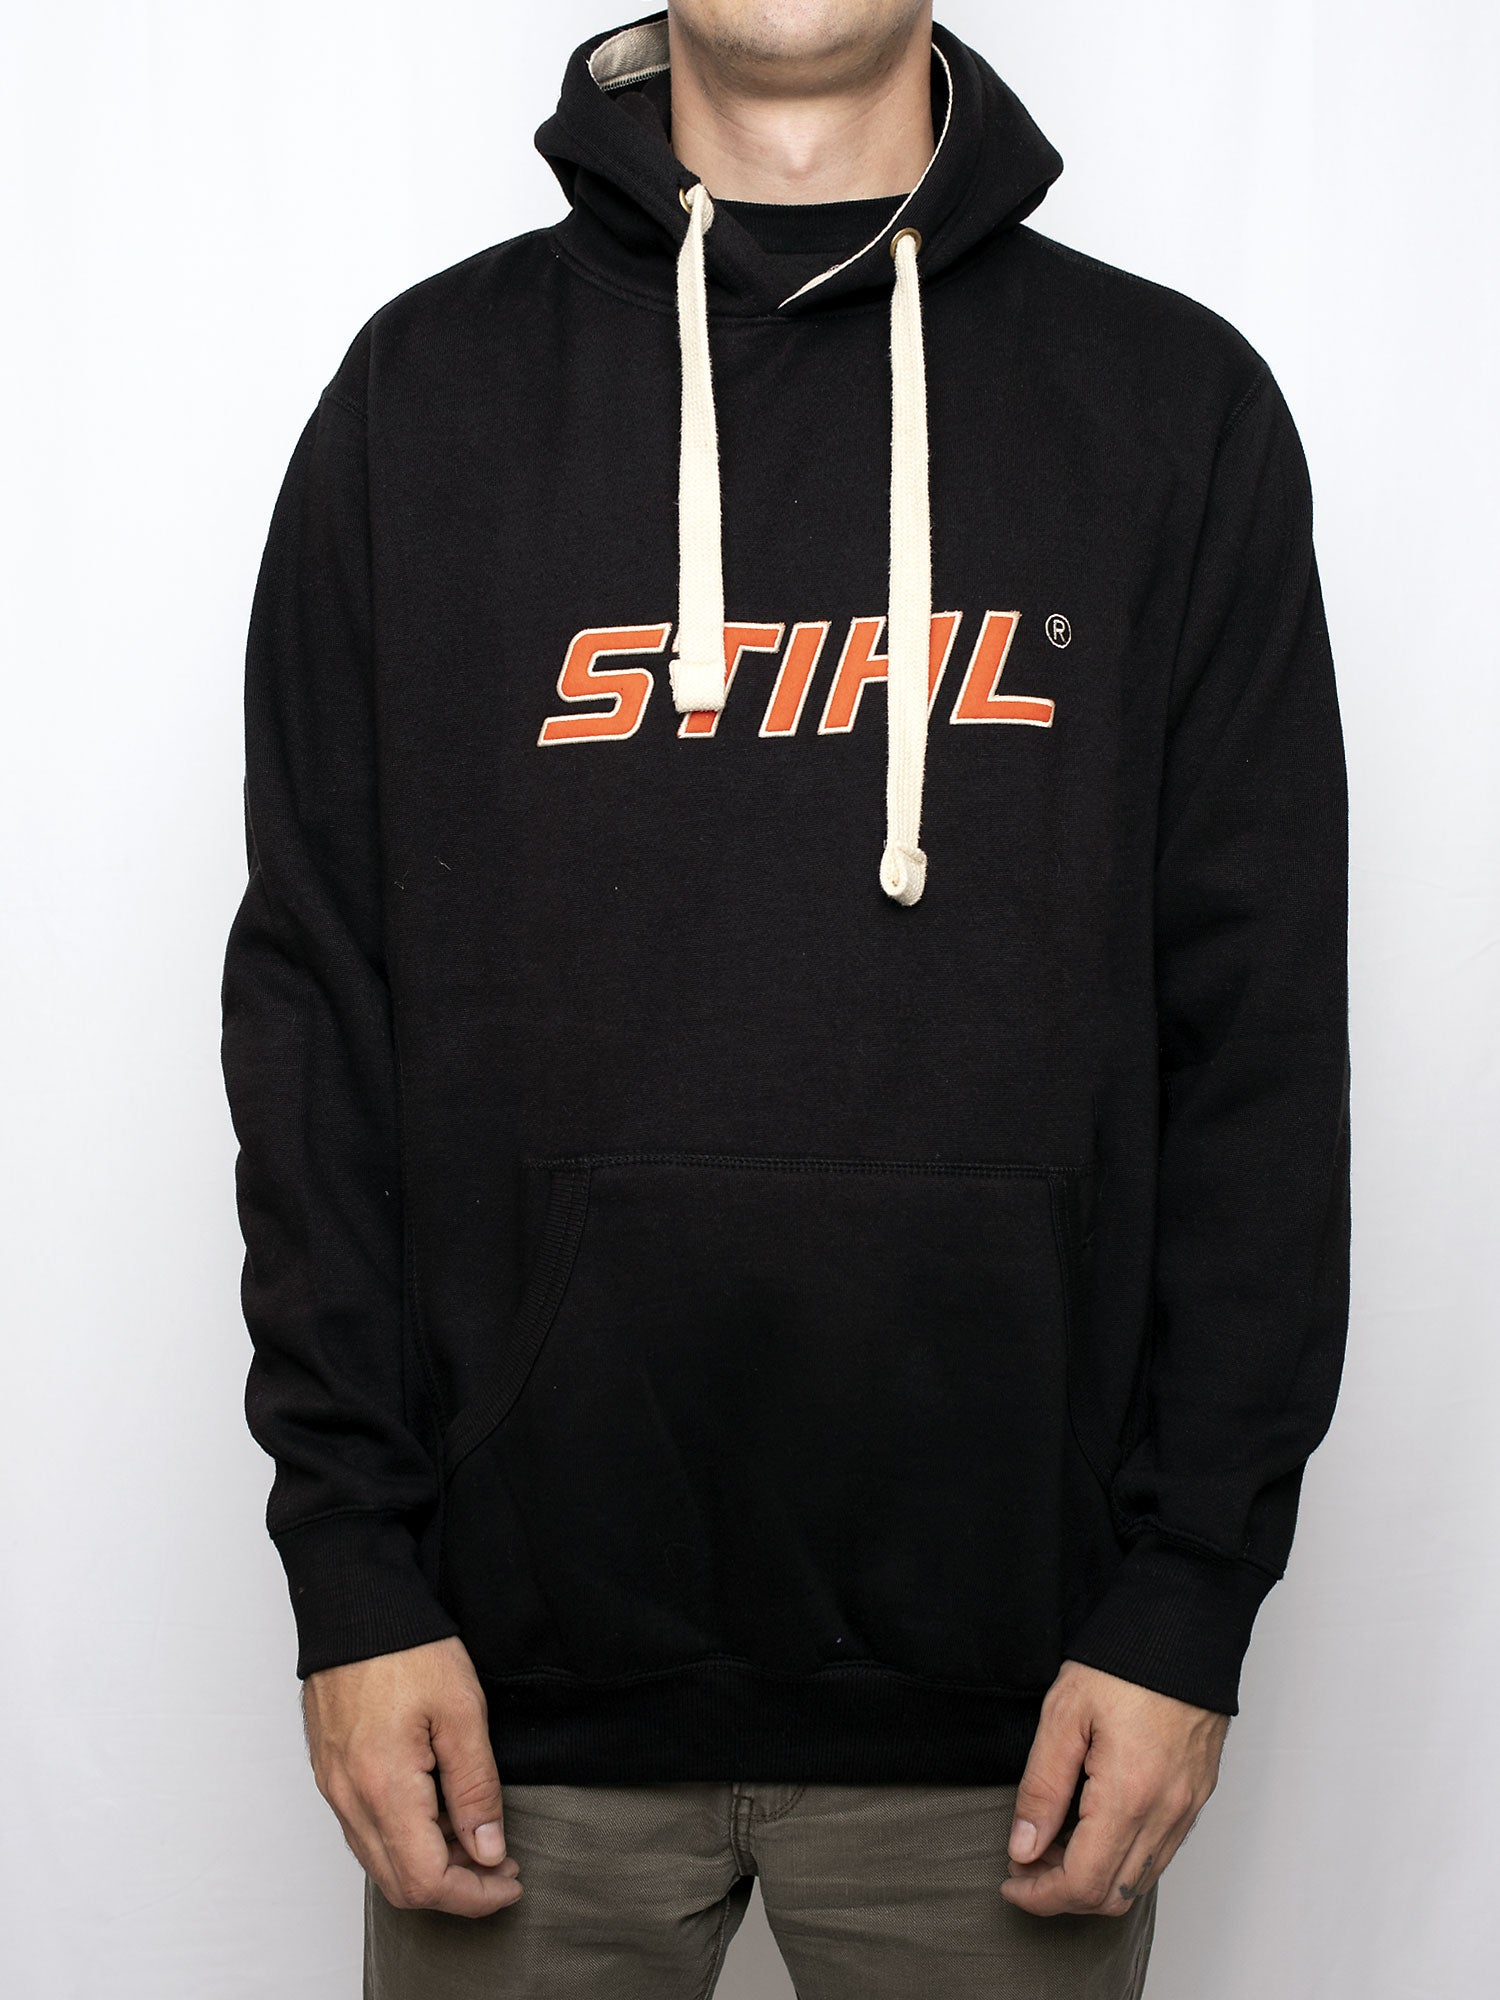 STIHL Super Heavyweight Hooded Sweatshirt